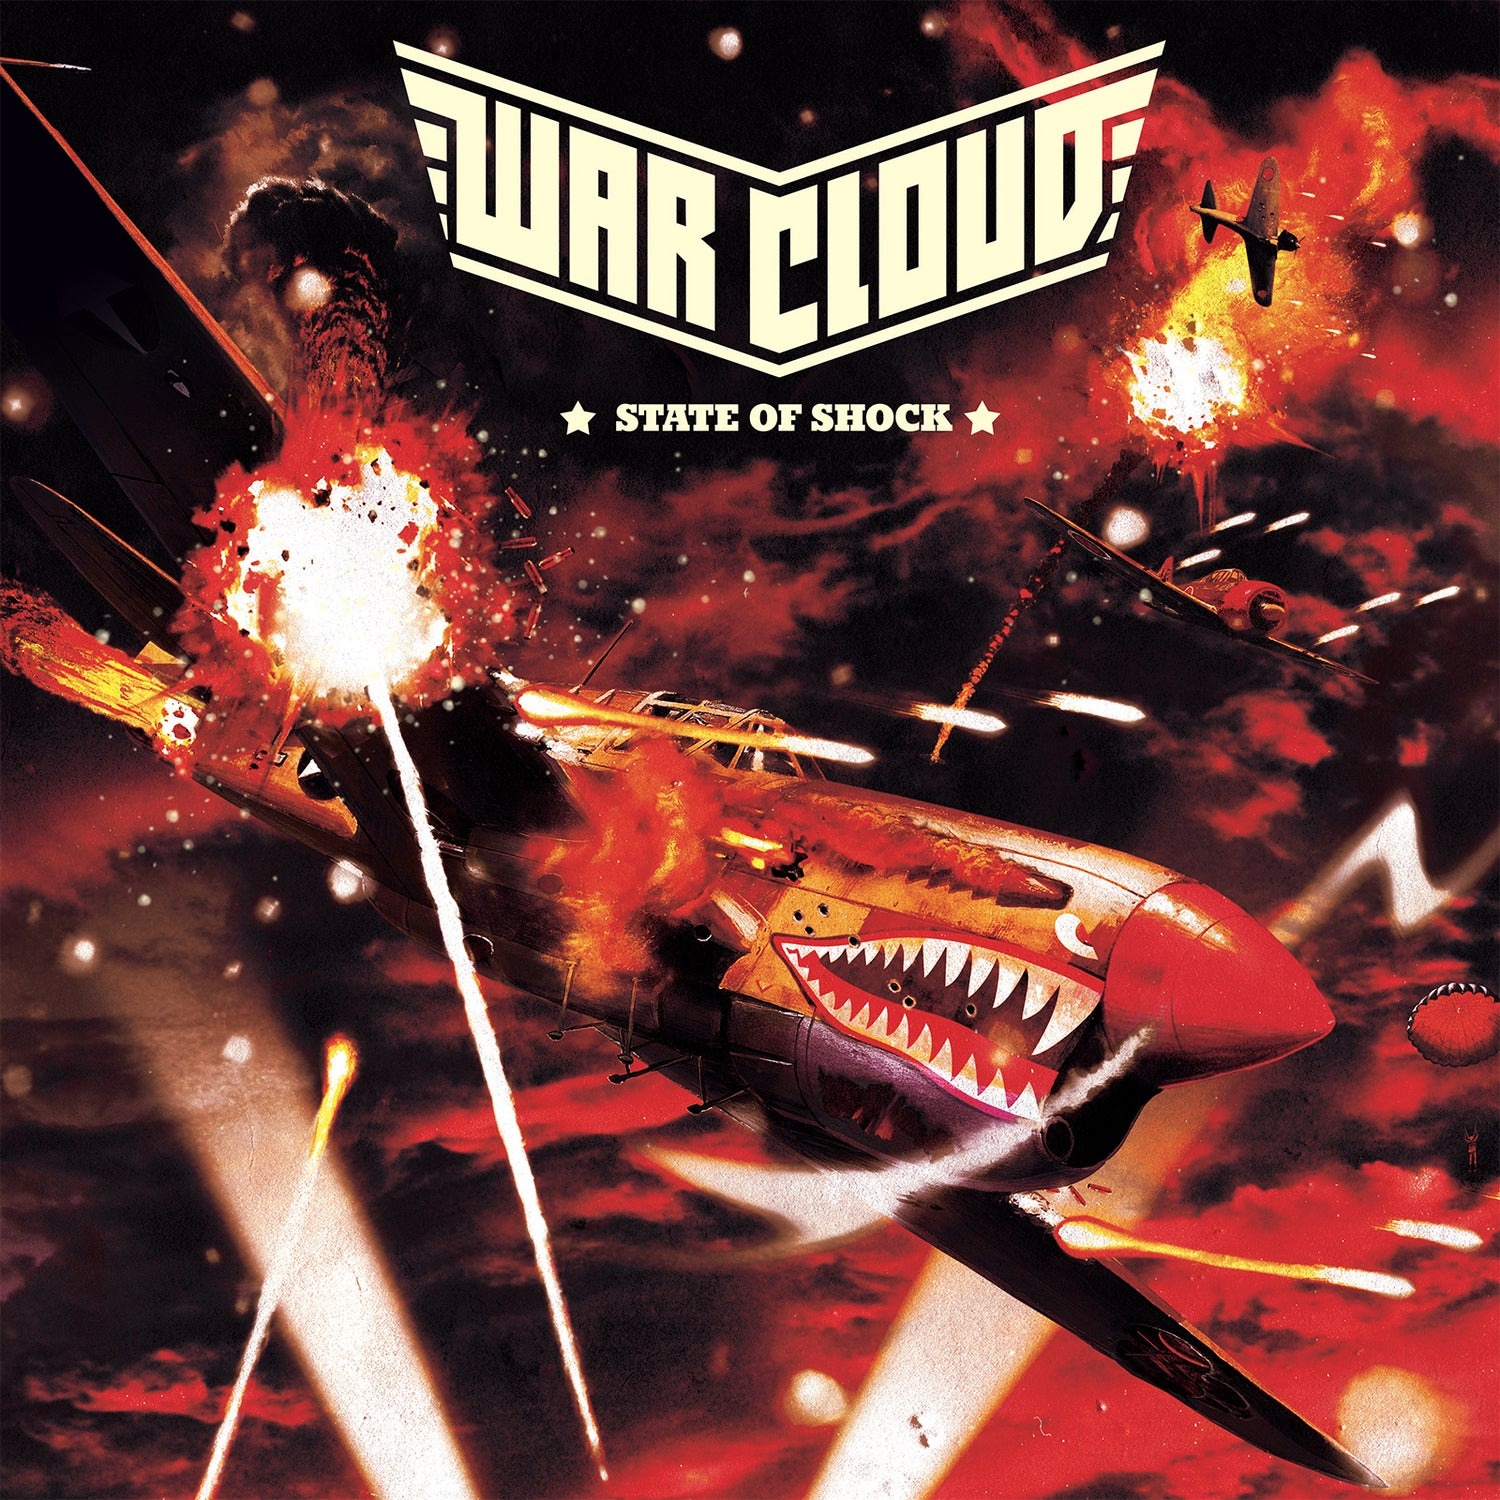 Image of War Cloud - State of Shock Limited Edition Digipak